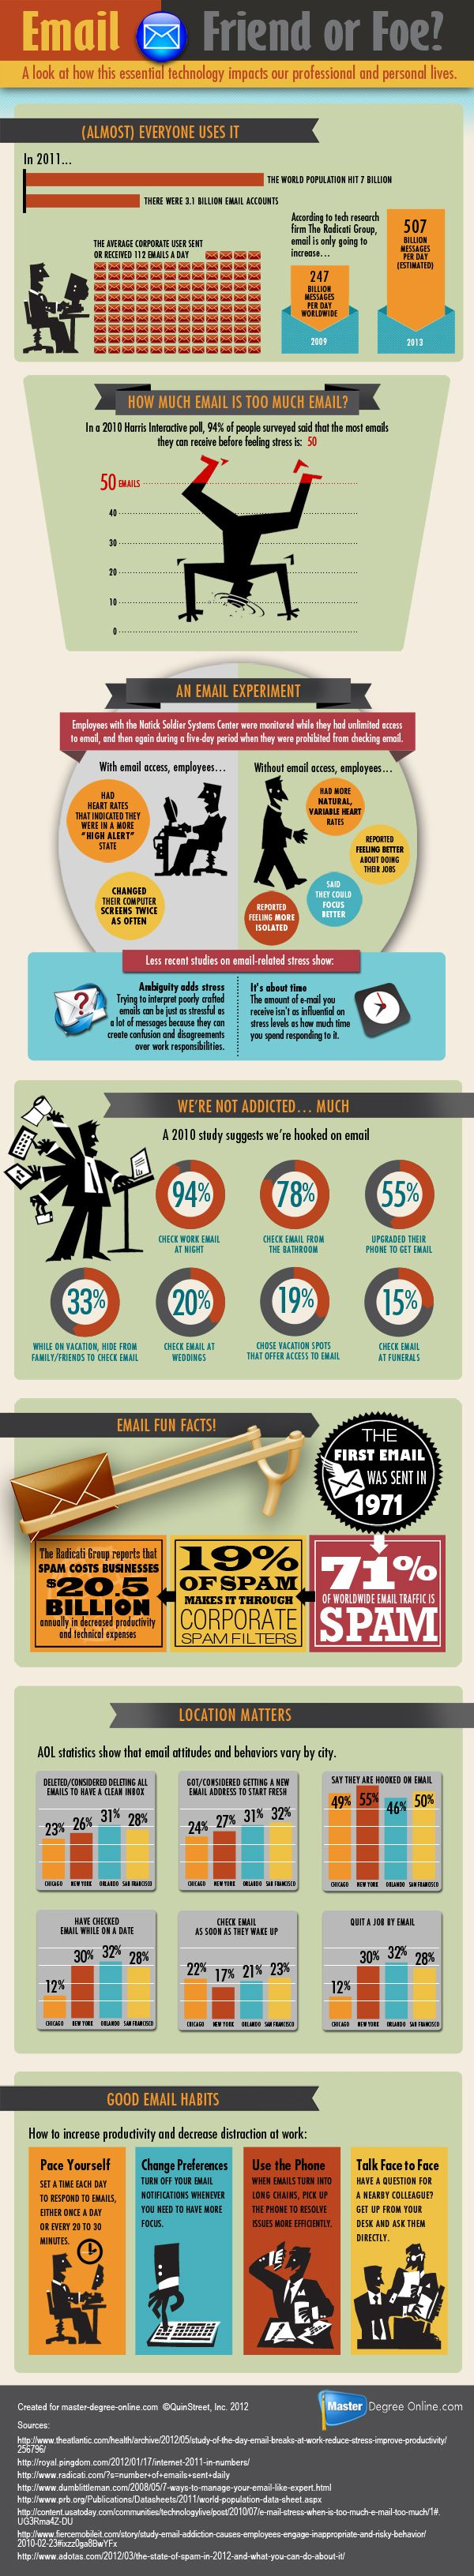 Email - Friend Or Foe? [INFOGRAPHIC] less email